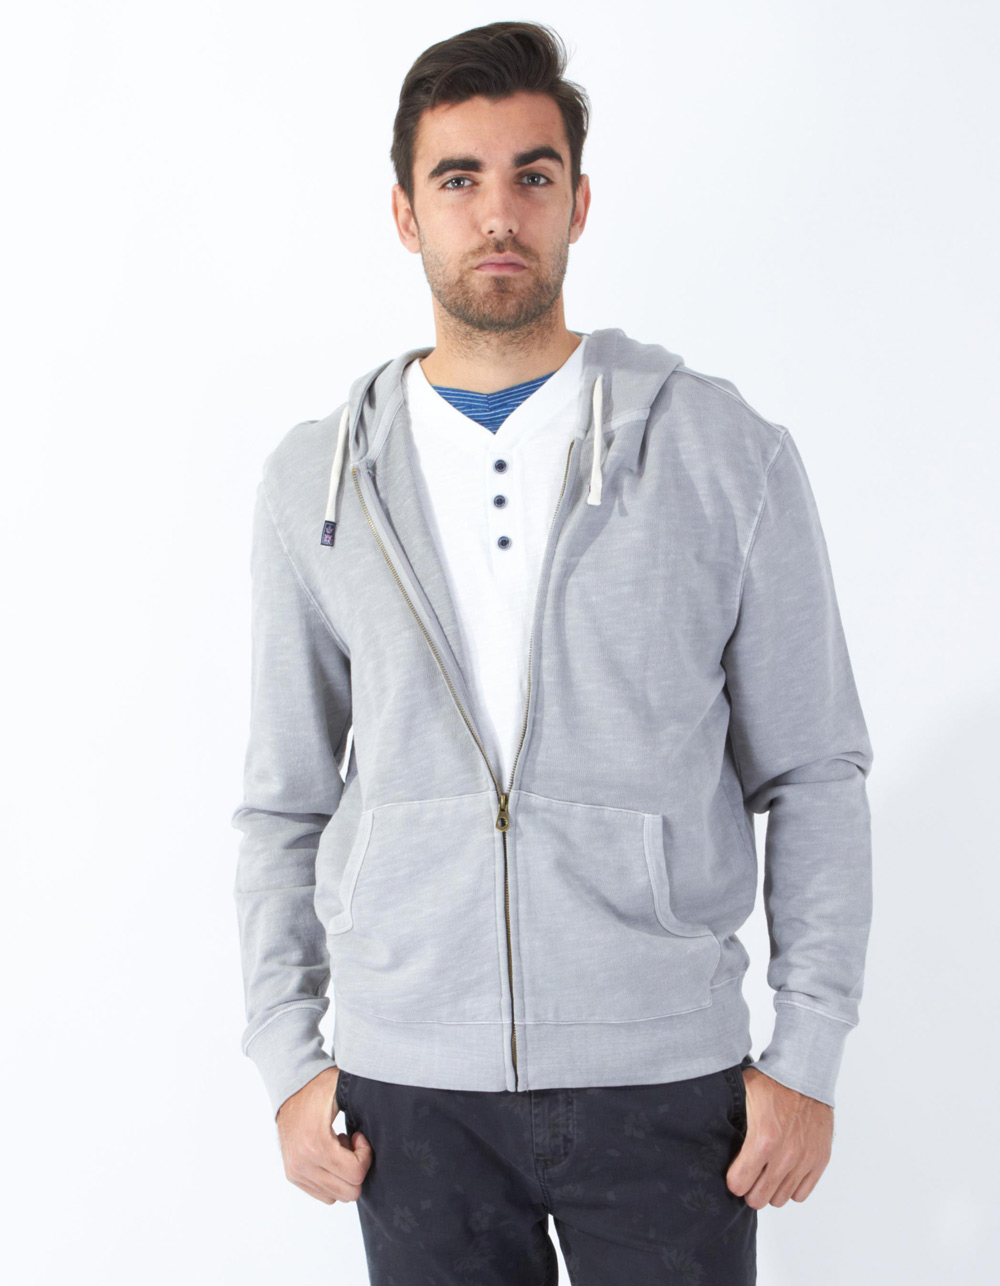 Grey hood sweatshirt - Backside